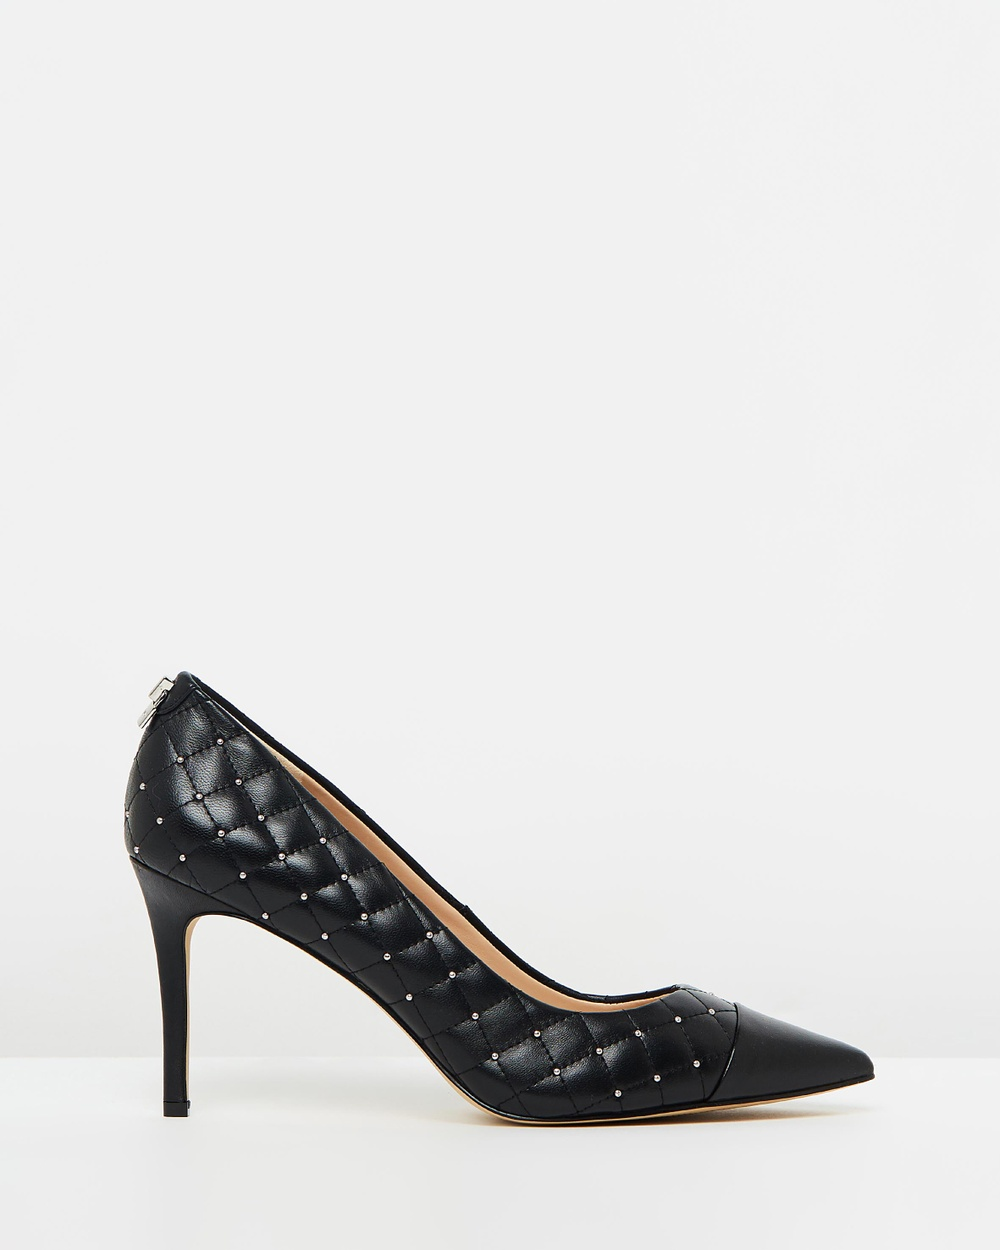 DKNY Ramona Pumps All Pumps Black Ramona Pumps